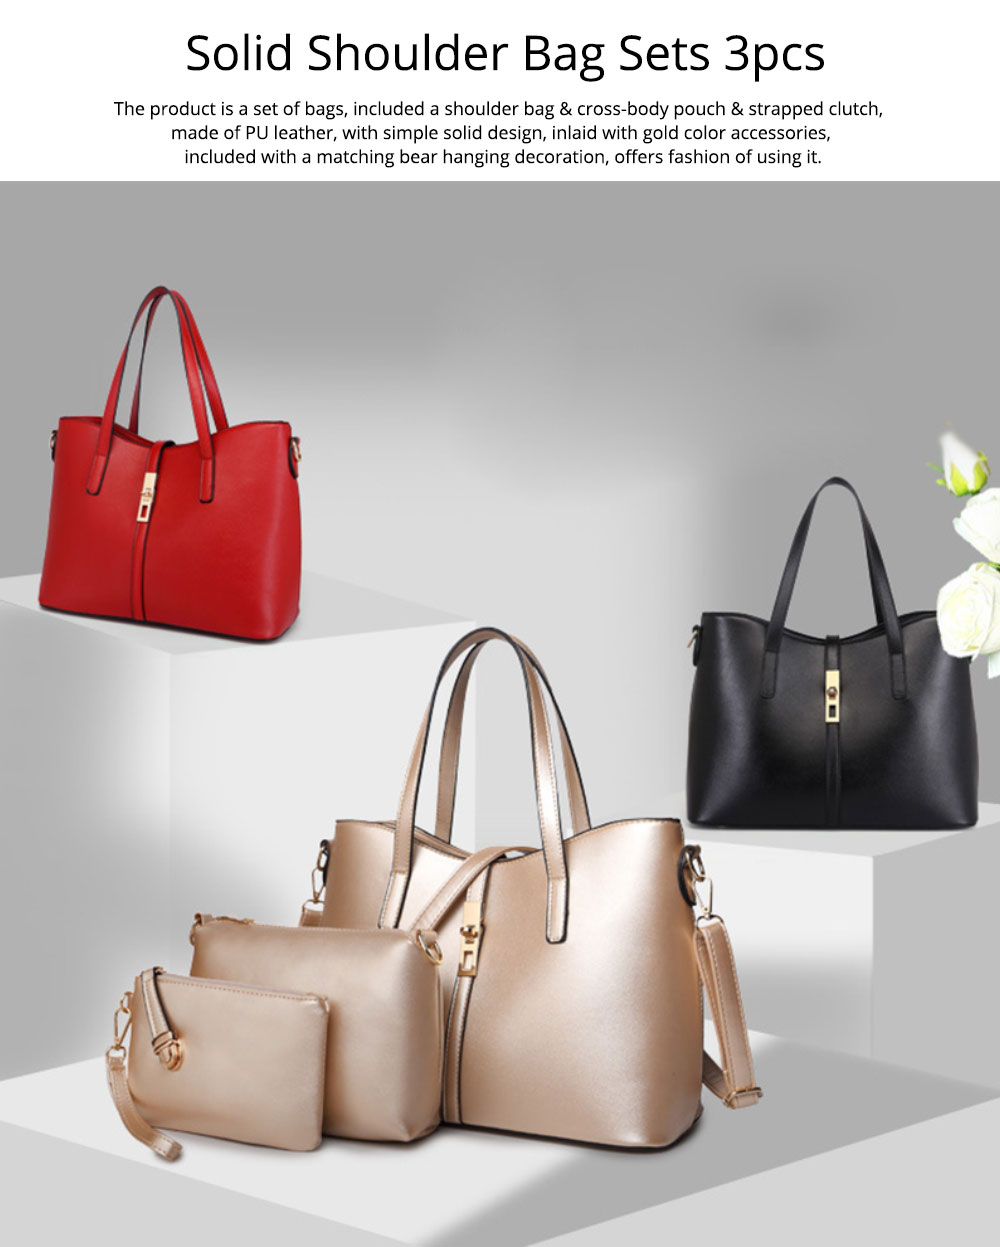 Simple Women Accessories Lady Tote Bag Sets - 3pcs Solid PU Leather Shoulder Bag & Cross Body Pouch & Strapped Clutch 0